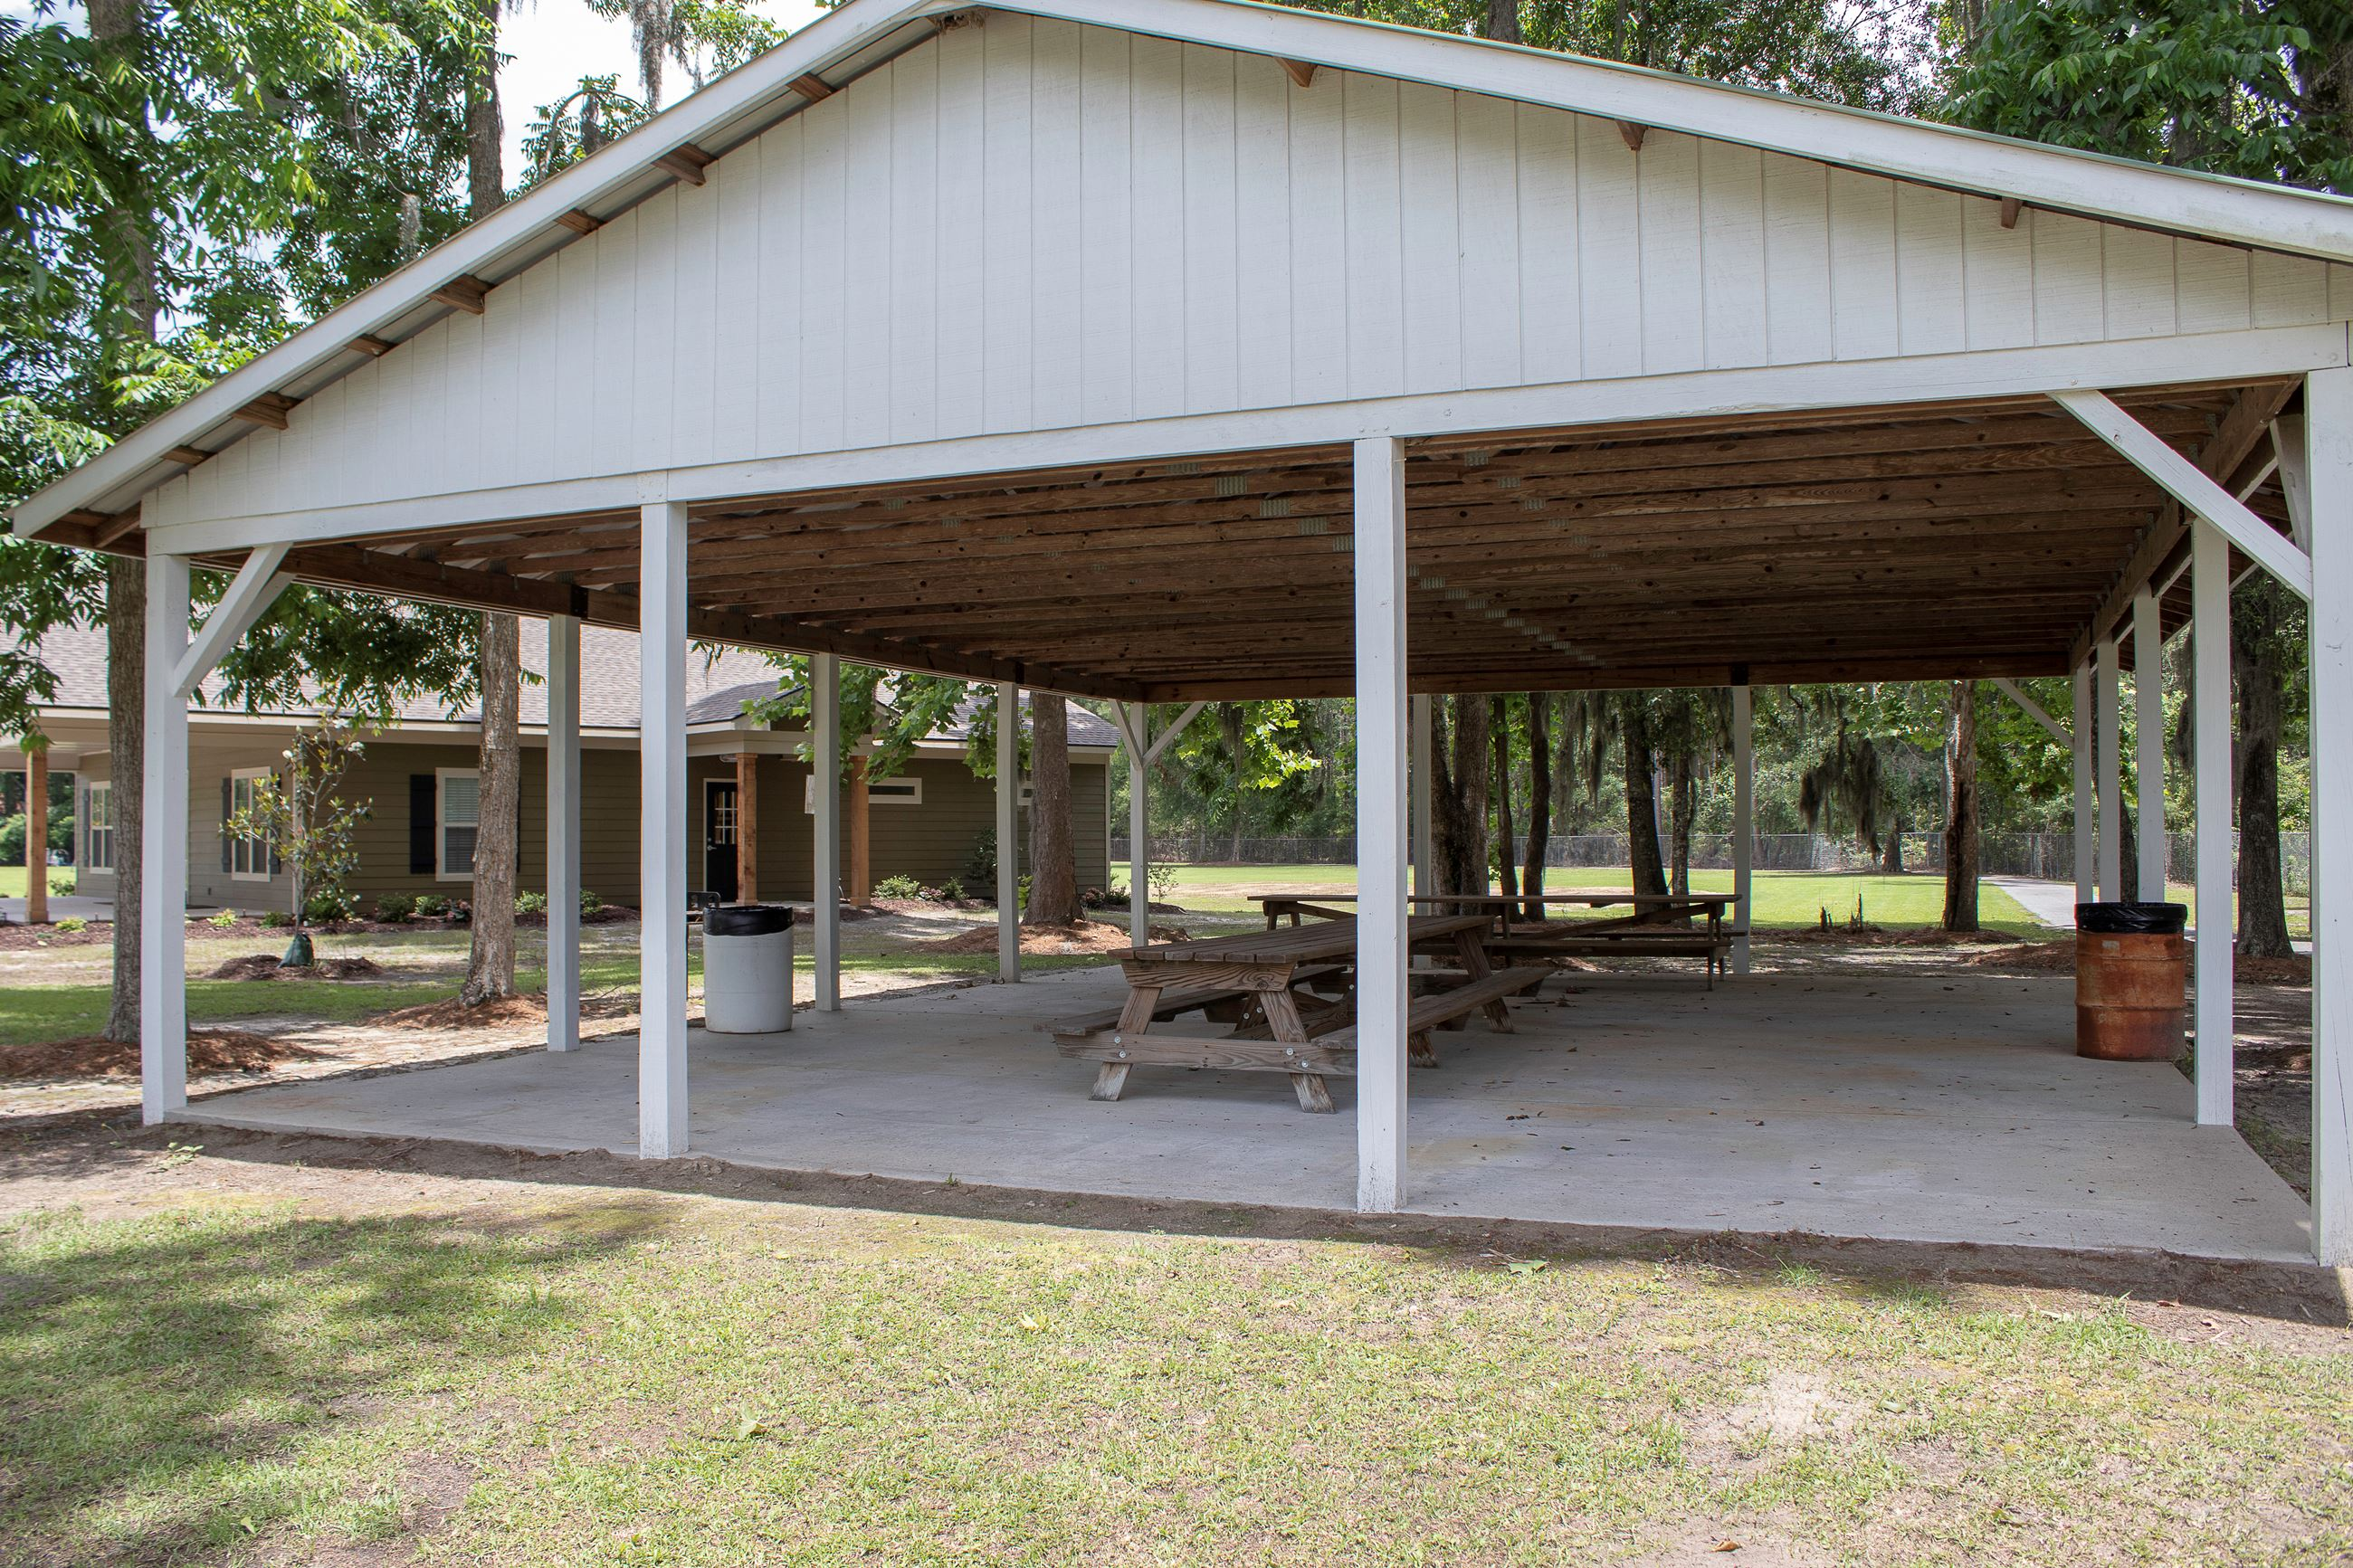 An image of a white picnic shelter with several picnic tables.